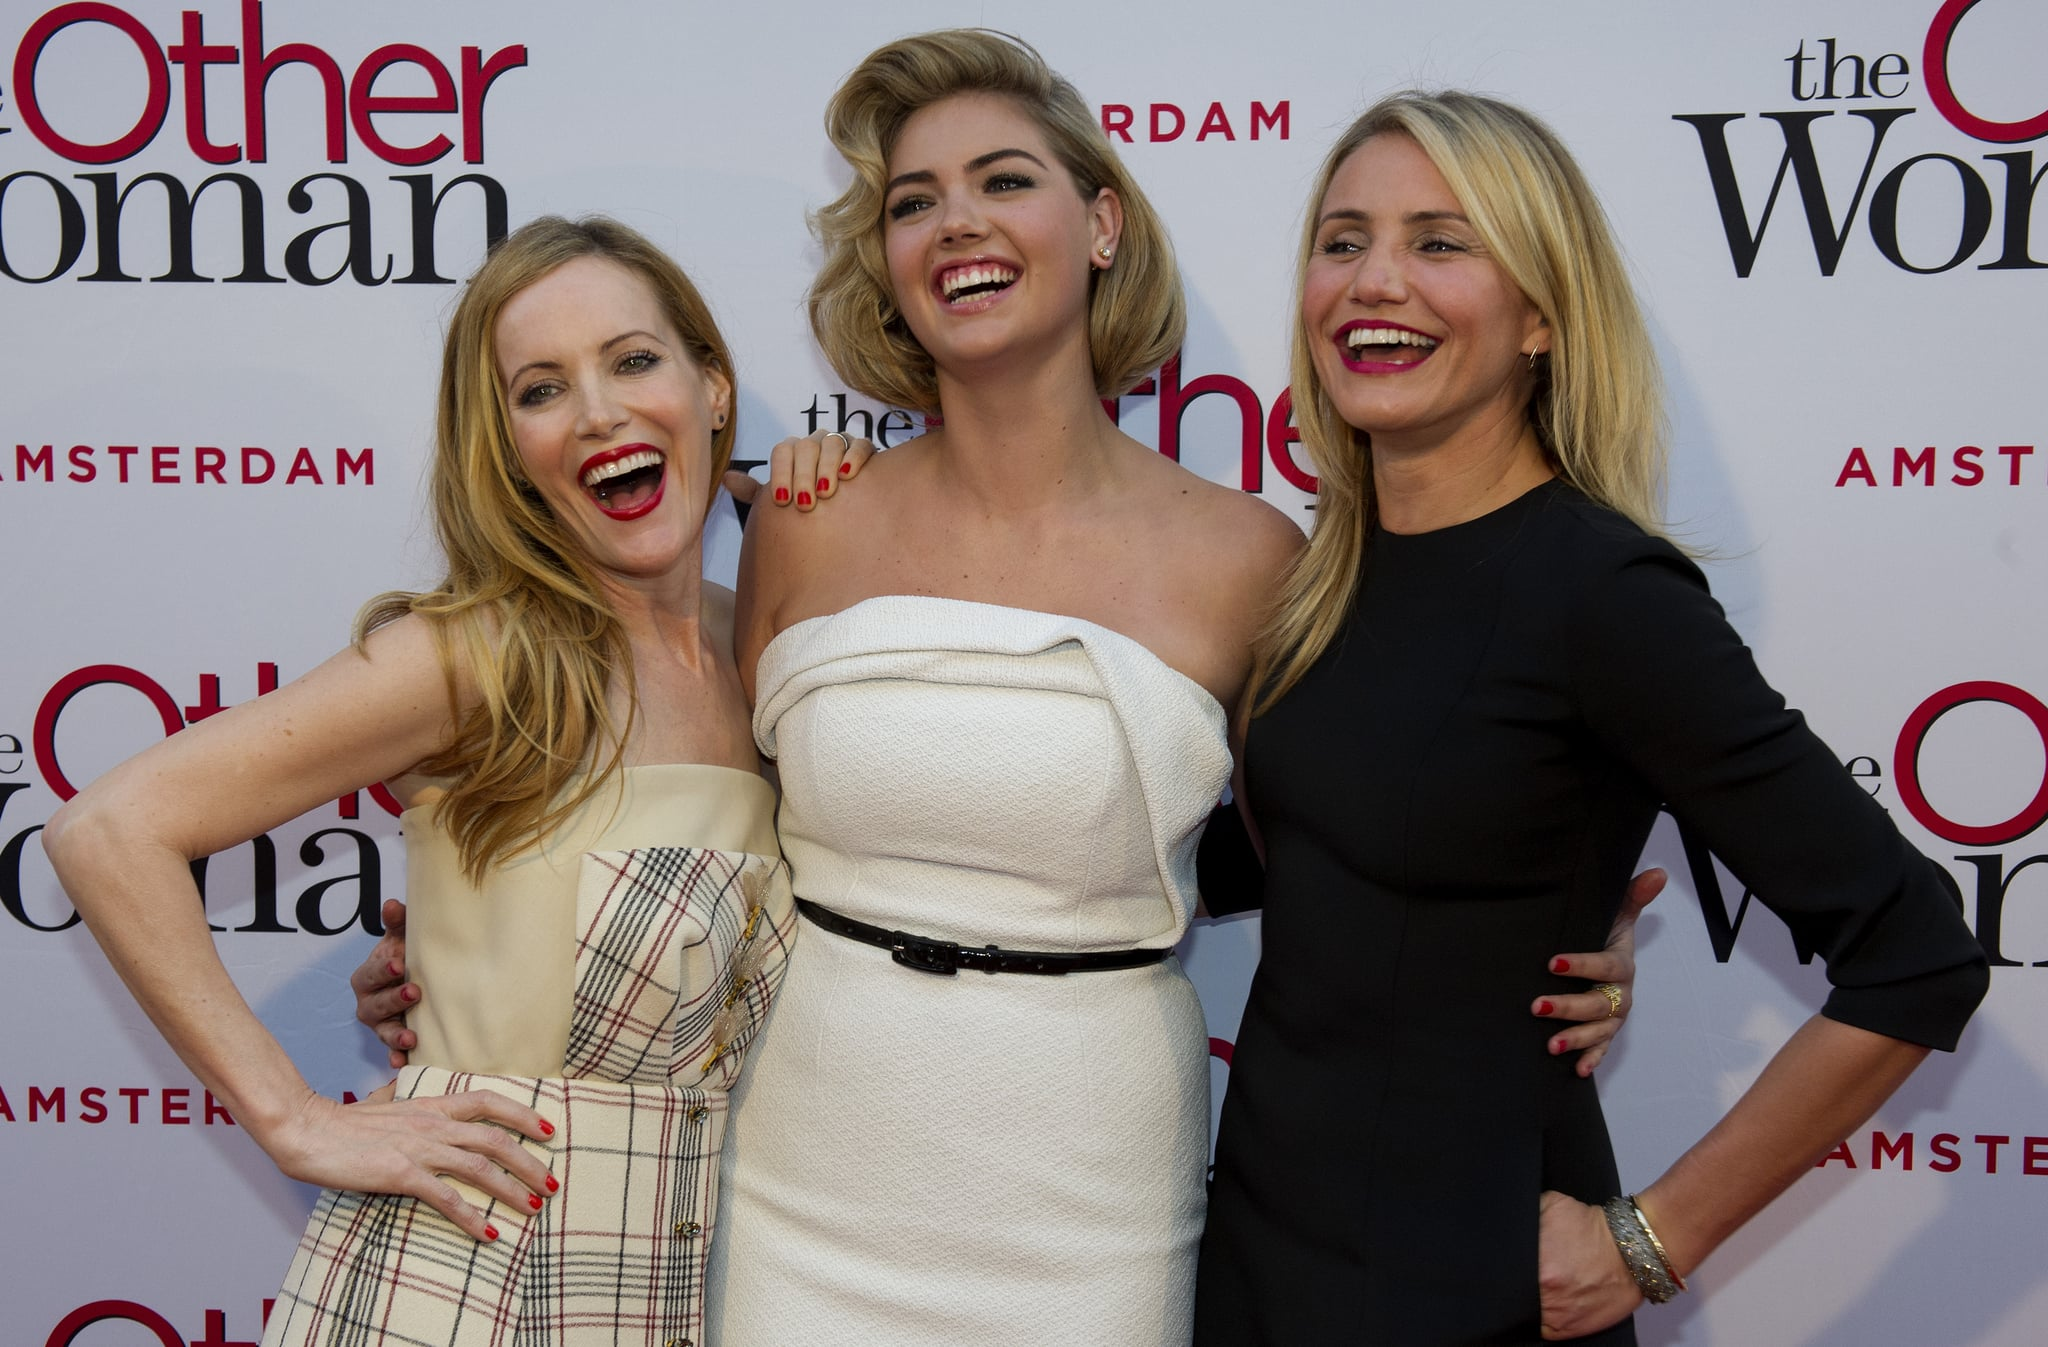 Leslie Mann, Kate Upton, and Cameron Diaz were all smiles at the premiere of The Other Woman in Amsterdam. Did you see Leslie's butt grab?